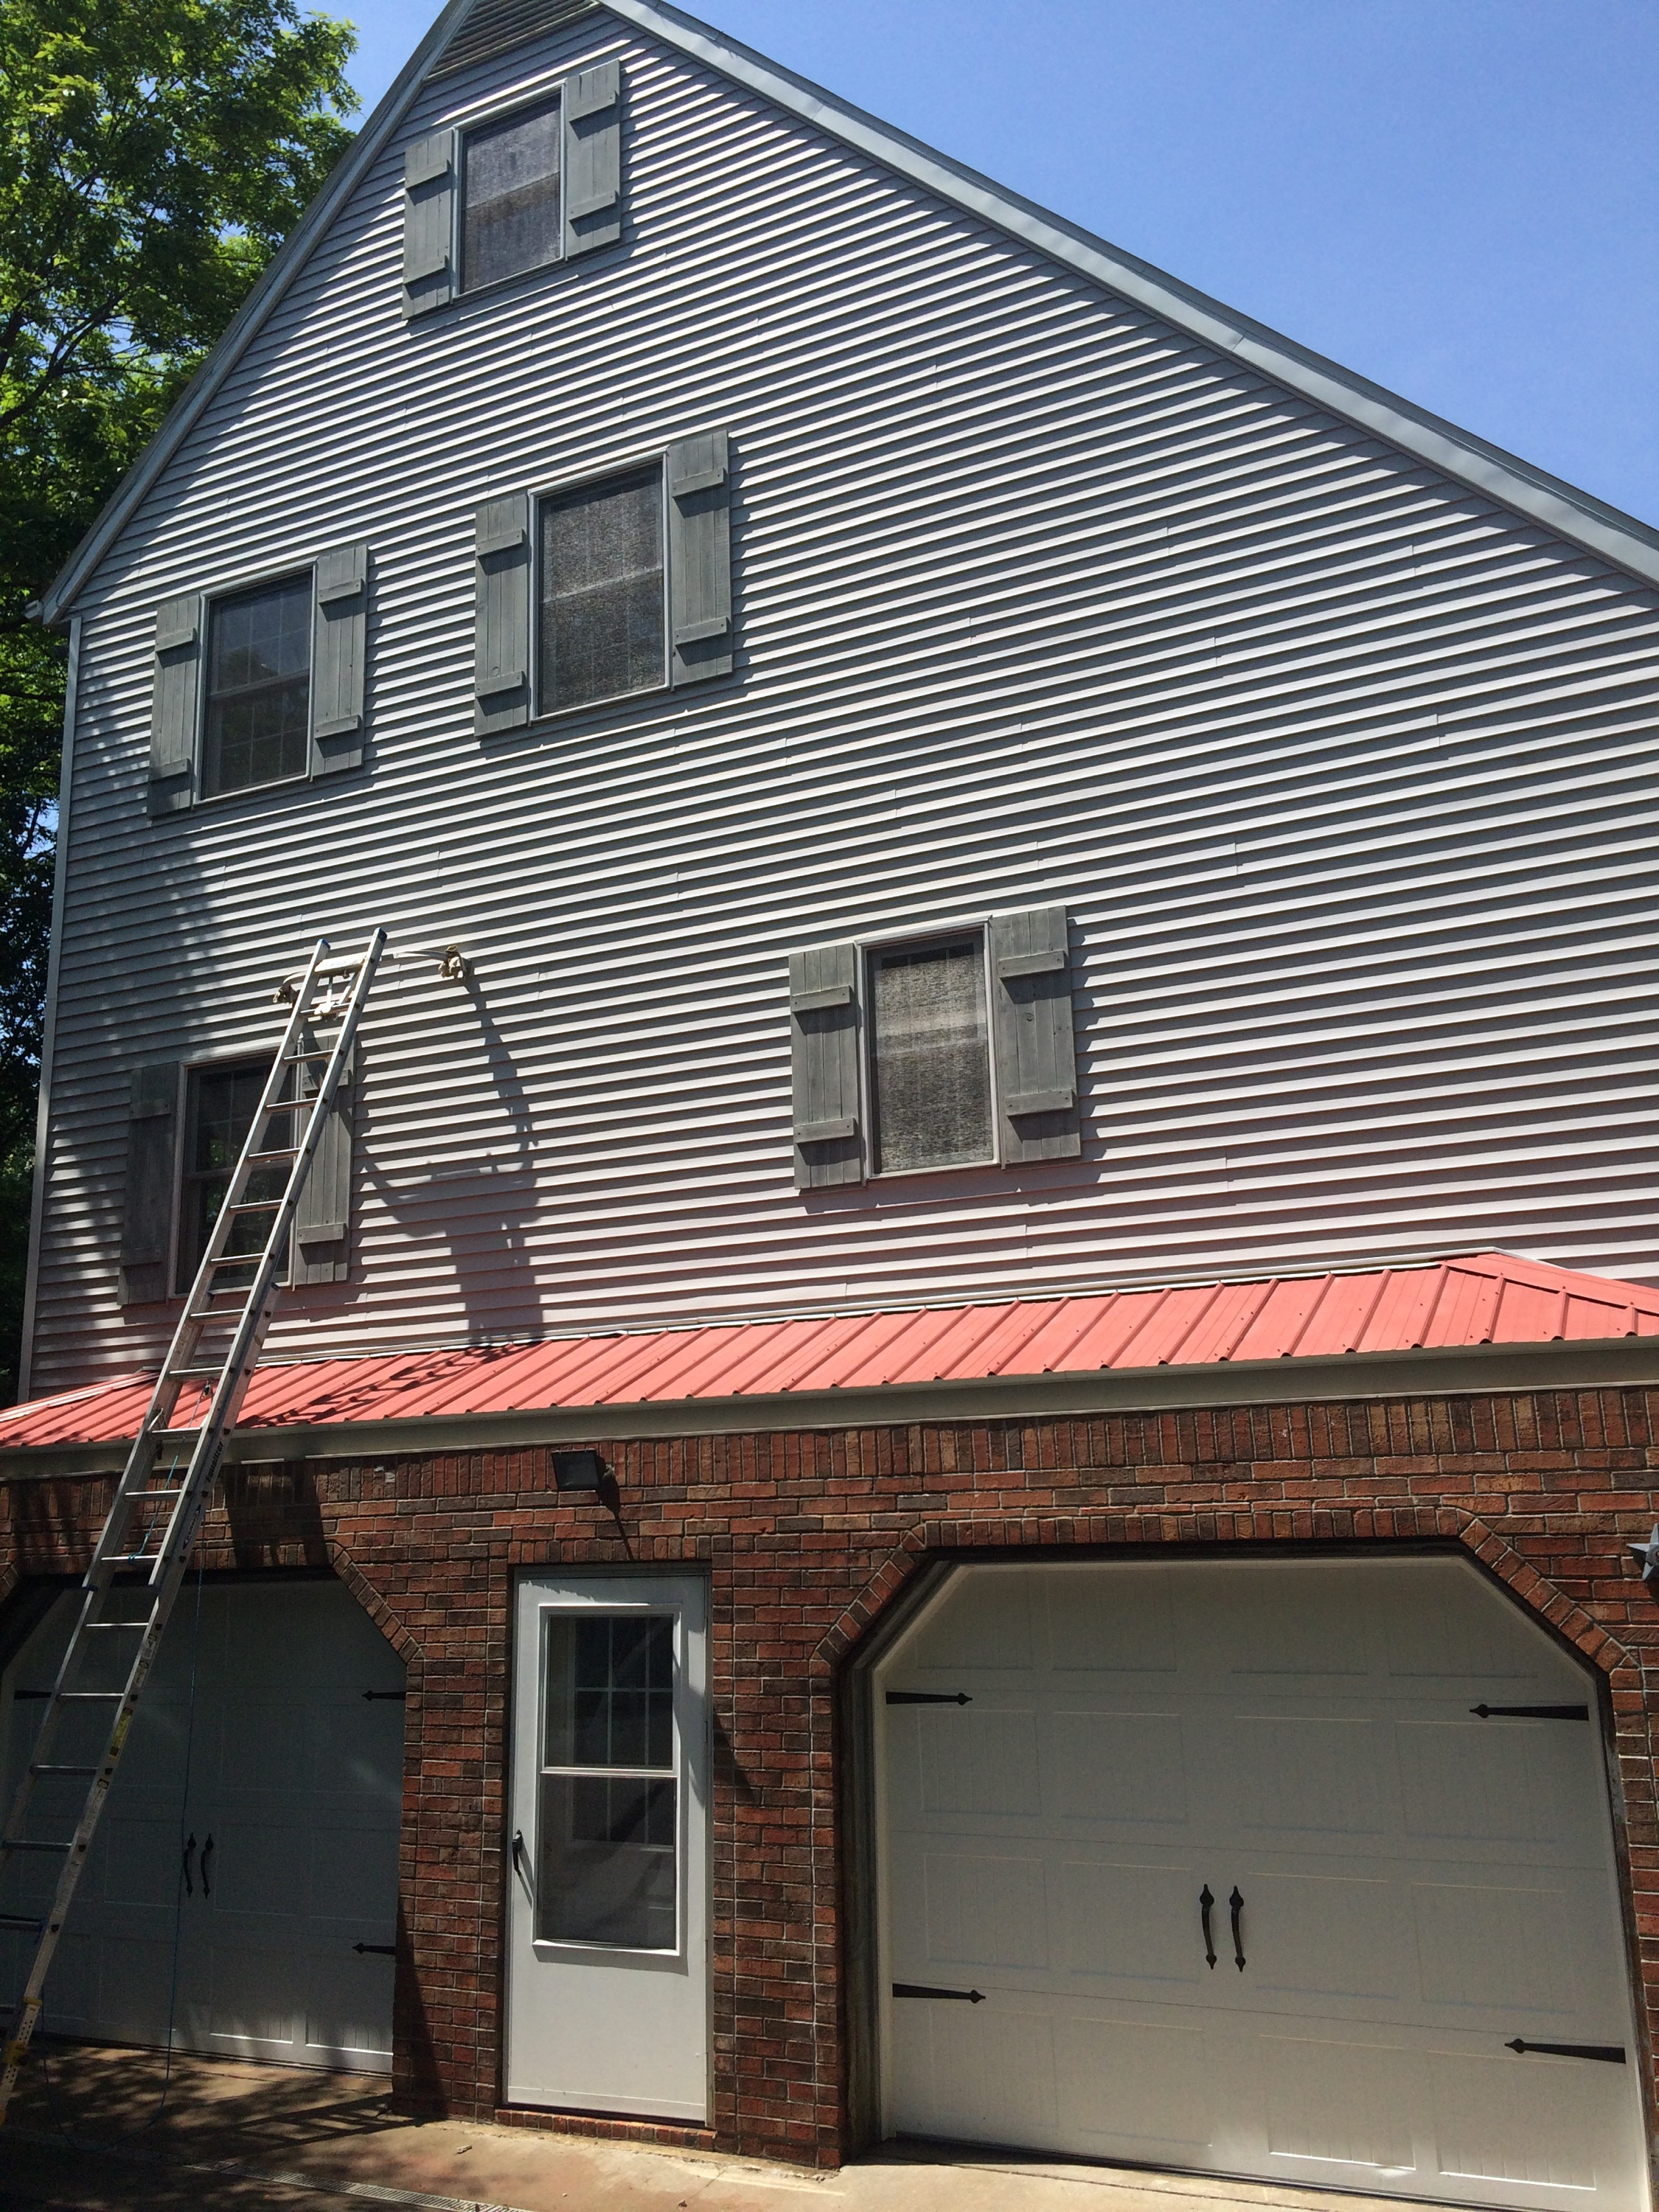 House Exterior Washing in Carbondale, IL -